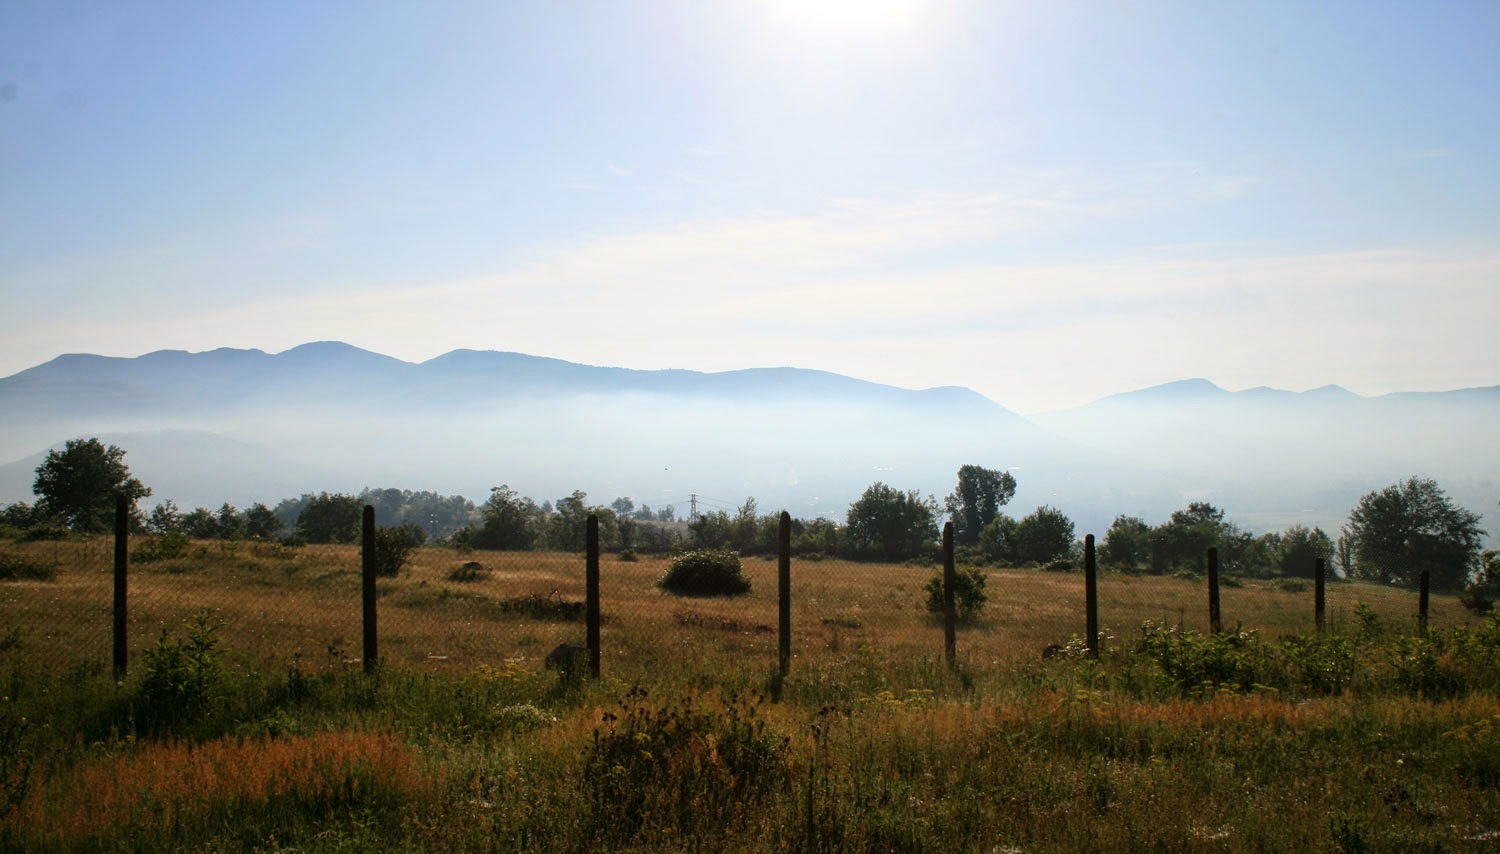 As usual, mist in the valley